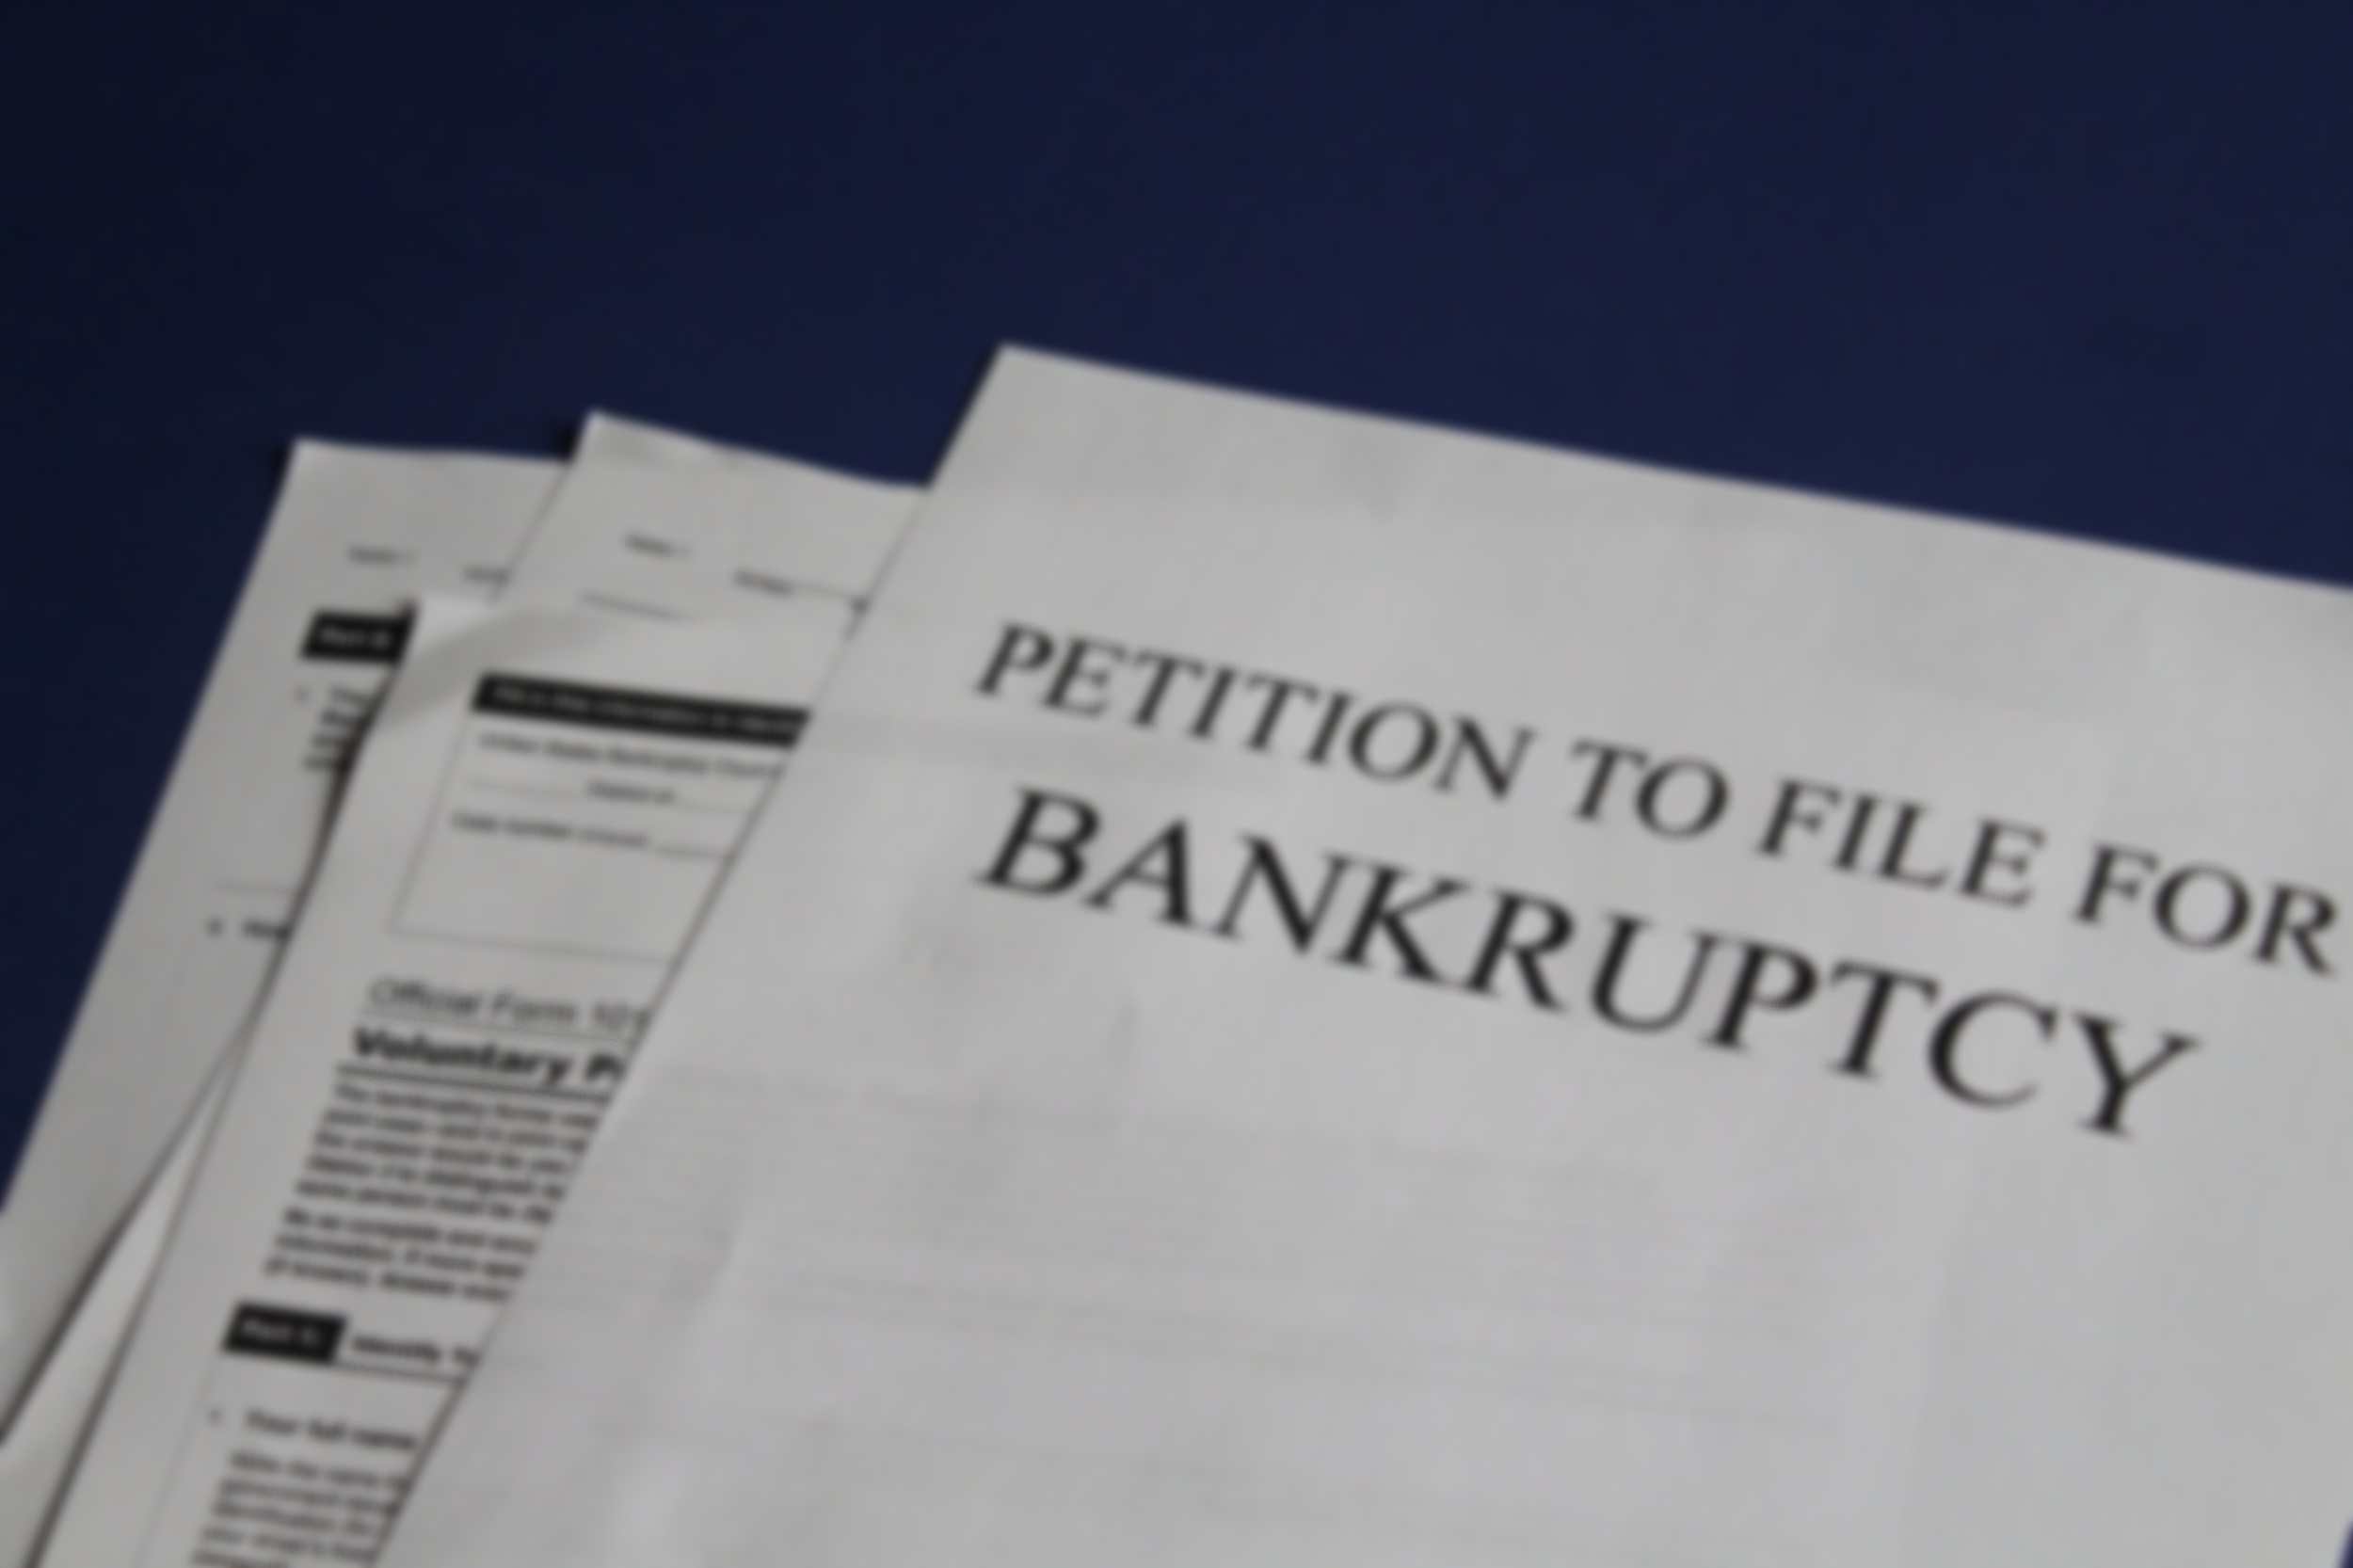 BANKRUPTCY -